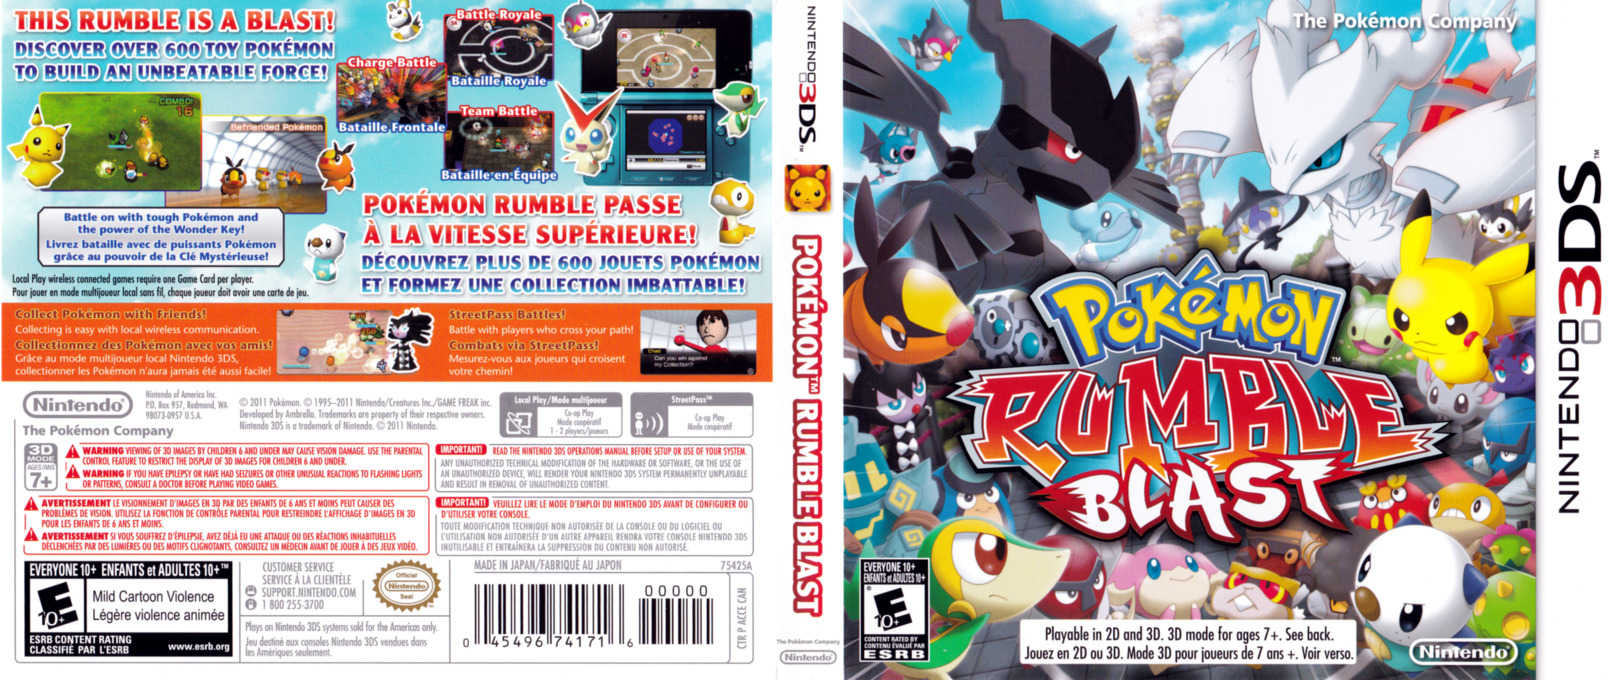 Pokémon Rumble Blast 3DS coverfullHQ (ACCE)